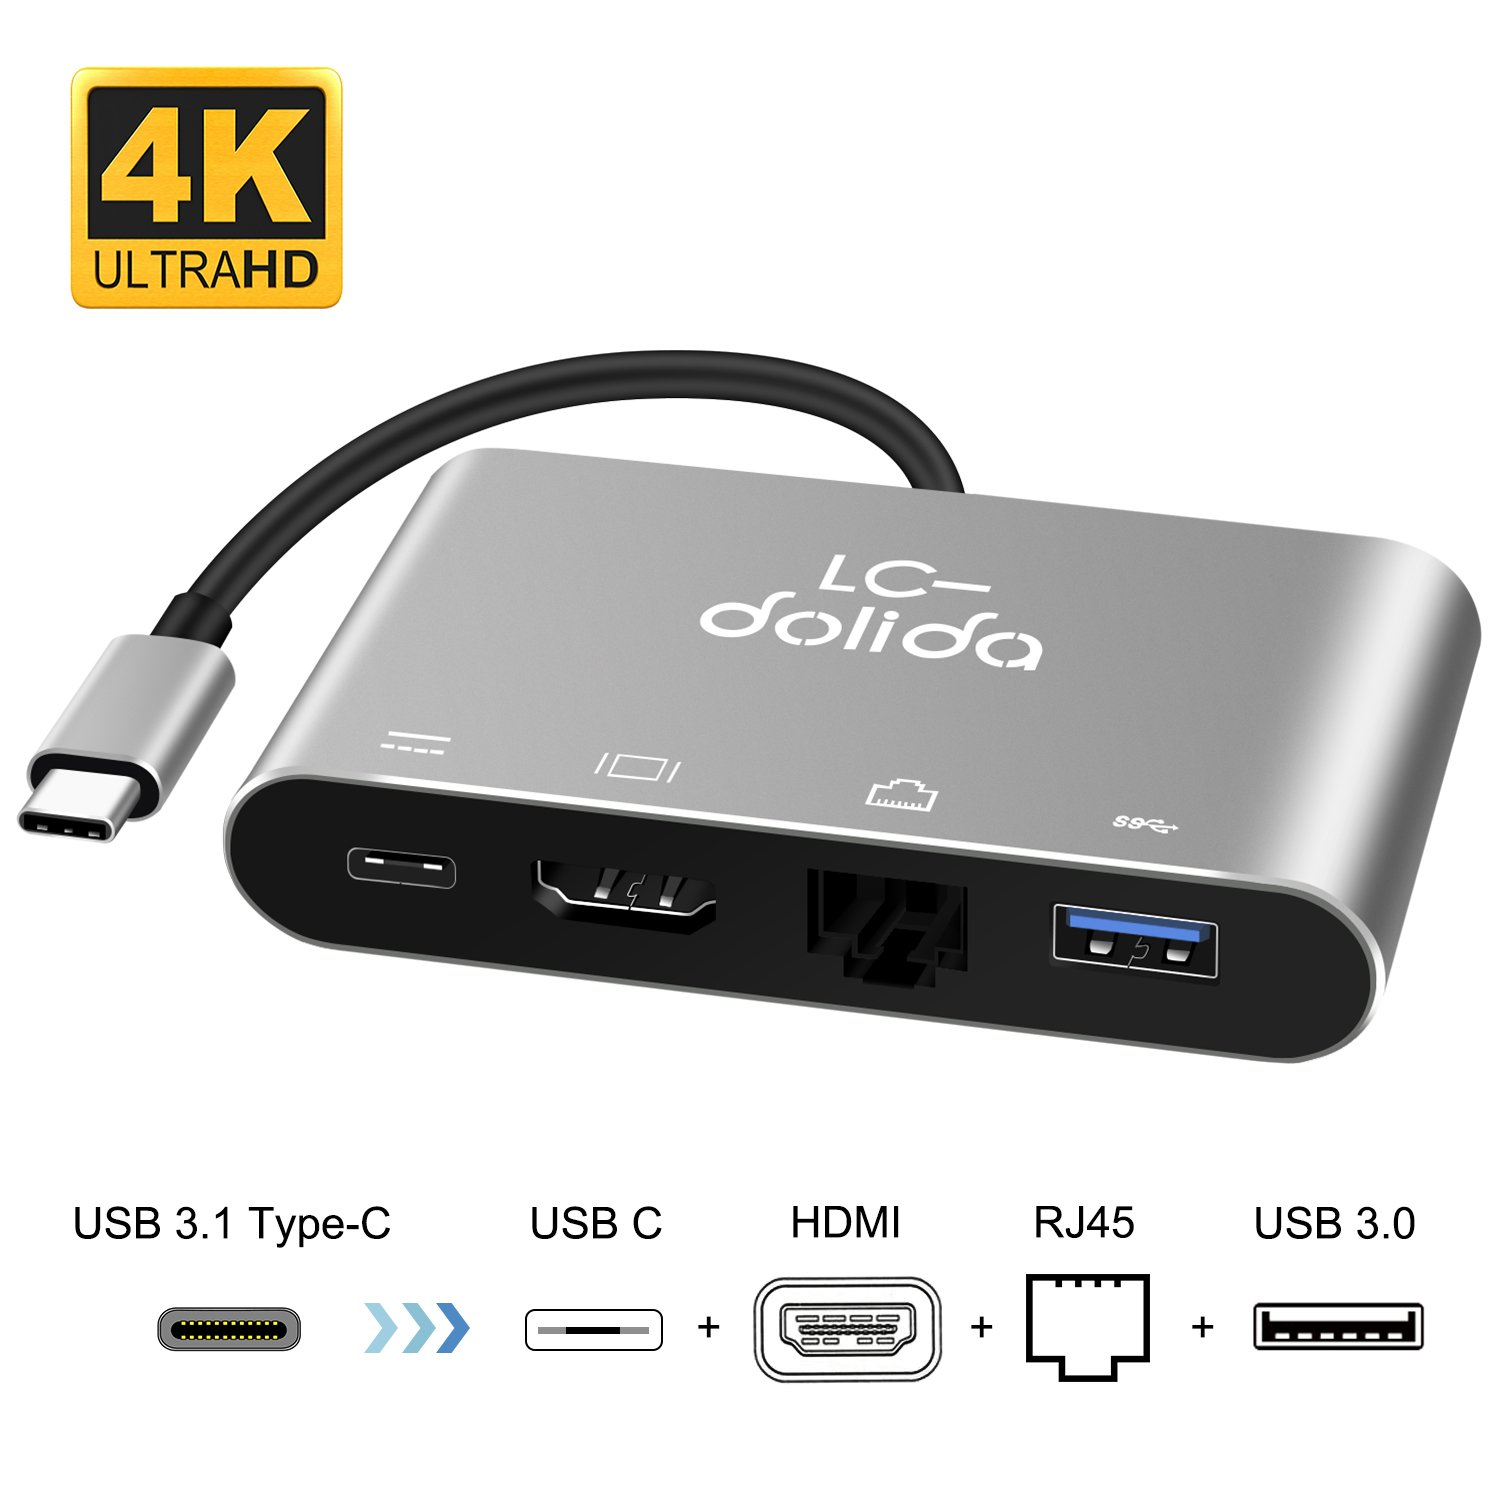 USB C To HDMI Adapter, LC-dolida Type C to HDMI 4K Hub with Gigabit Ethernet, Power Delivery Charging Port and USB 3.0 Port for New MacBook Pro 2016/2017, Samsung Galaxy S8/S8 Plus/Note 8, No Driver